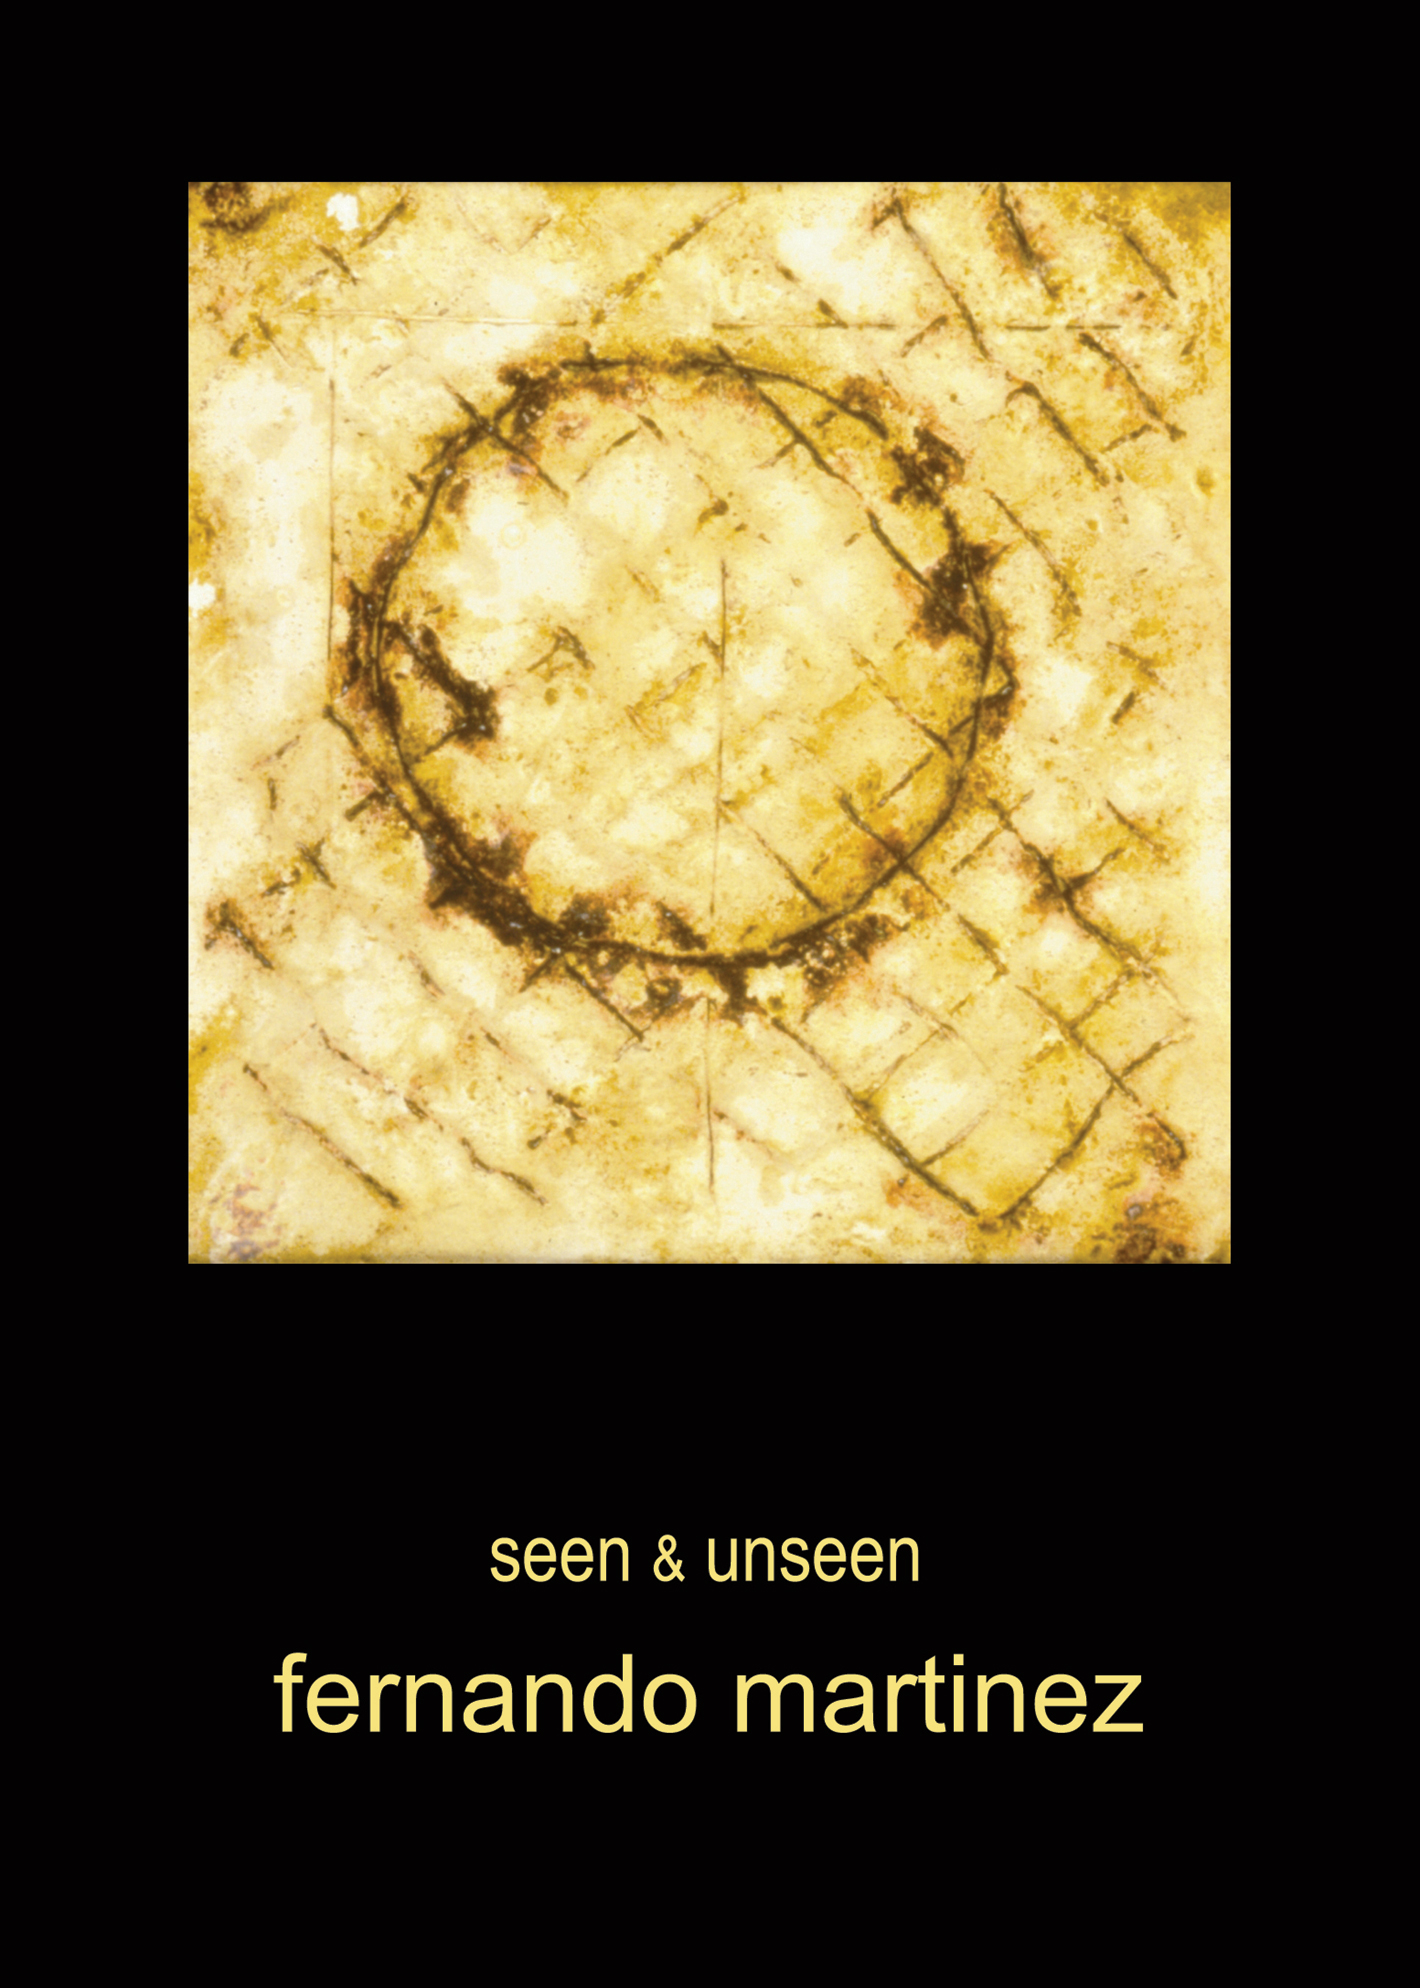 Past Exhibition - Seen and unseen with Fernando Martinez